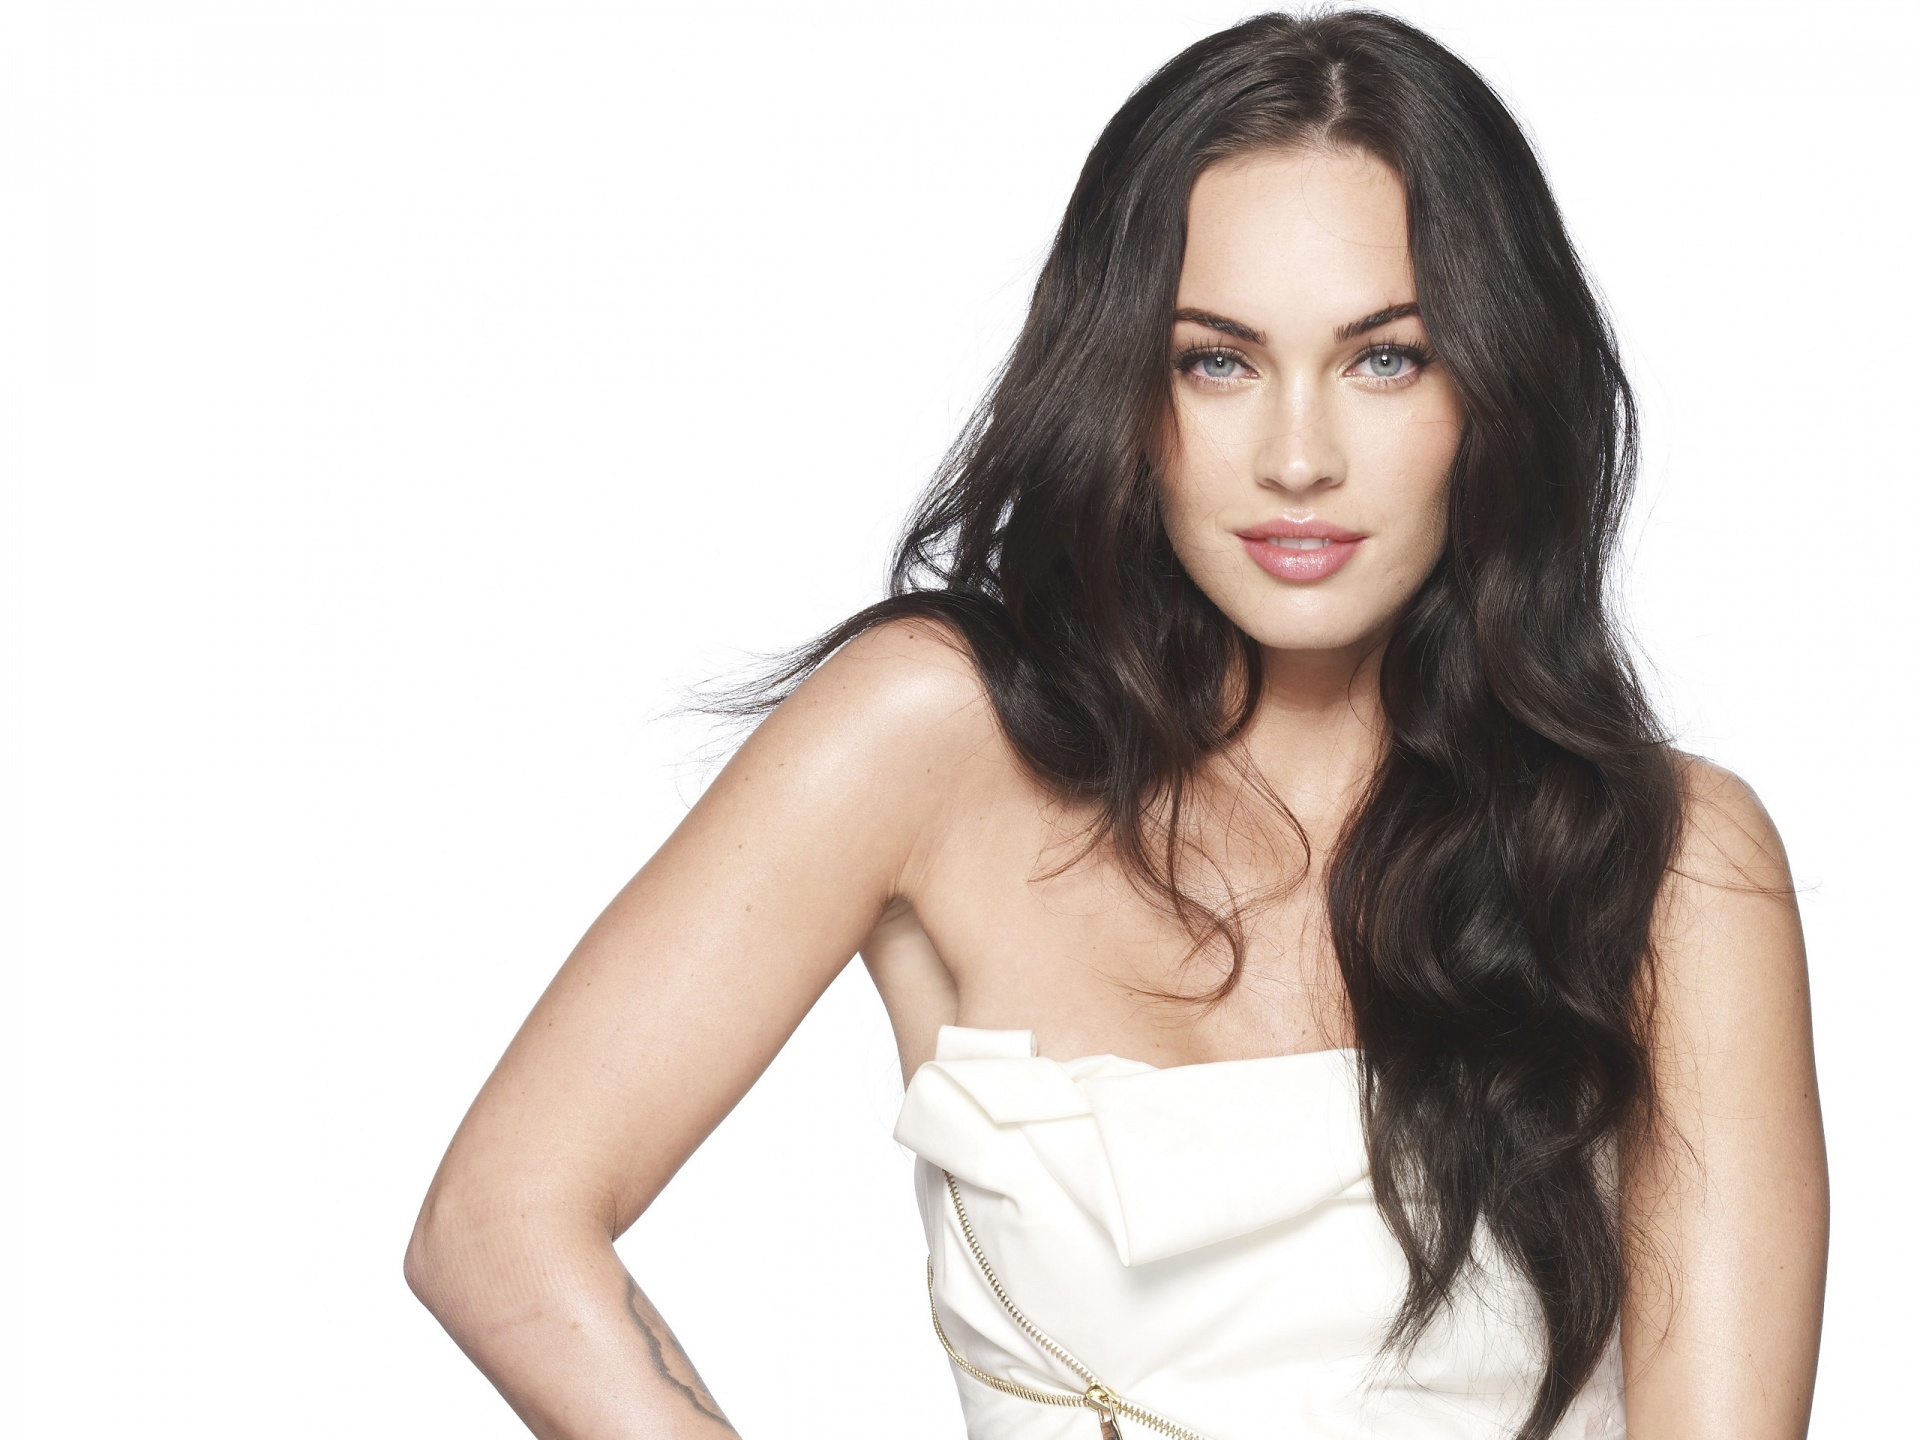 megan fox pictures hd A31